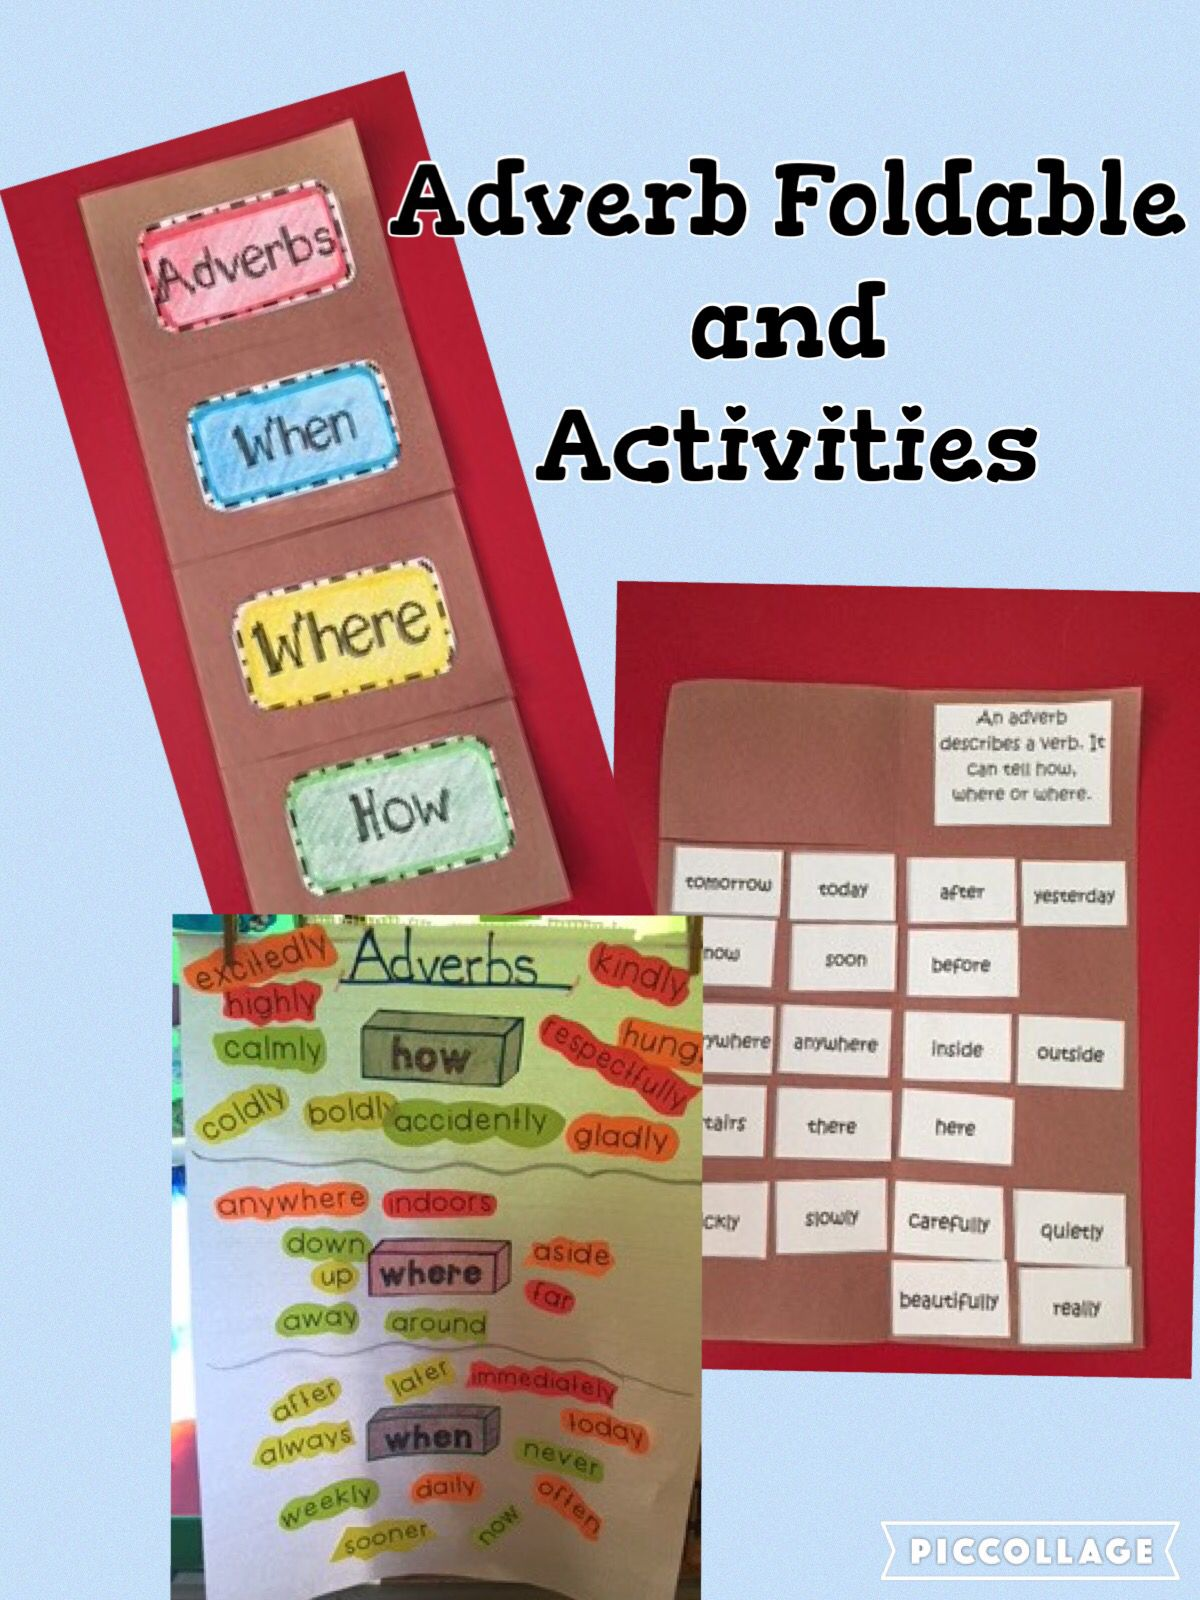 Adverb Foldable And Activities A Great Resource For Teaching About Adverbs Elementary Teaching Resources Elementary Resources Adverbs [ 1600 x 1200 Pixel ]